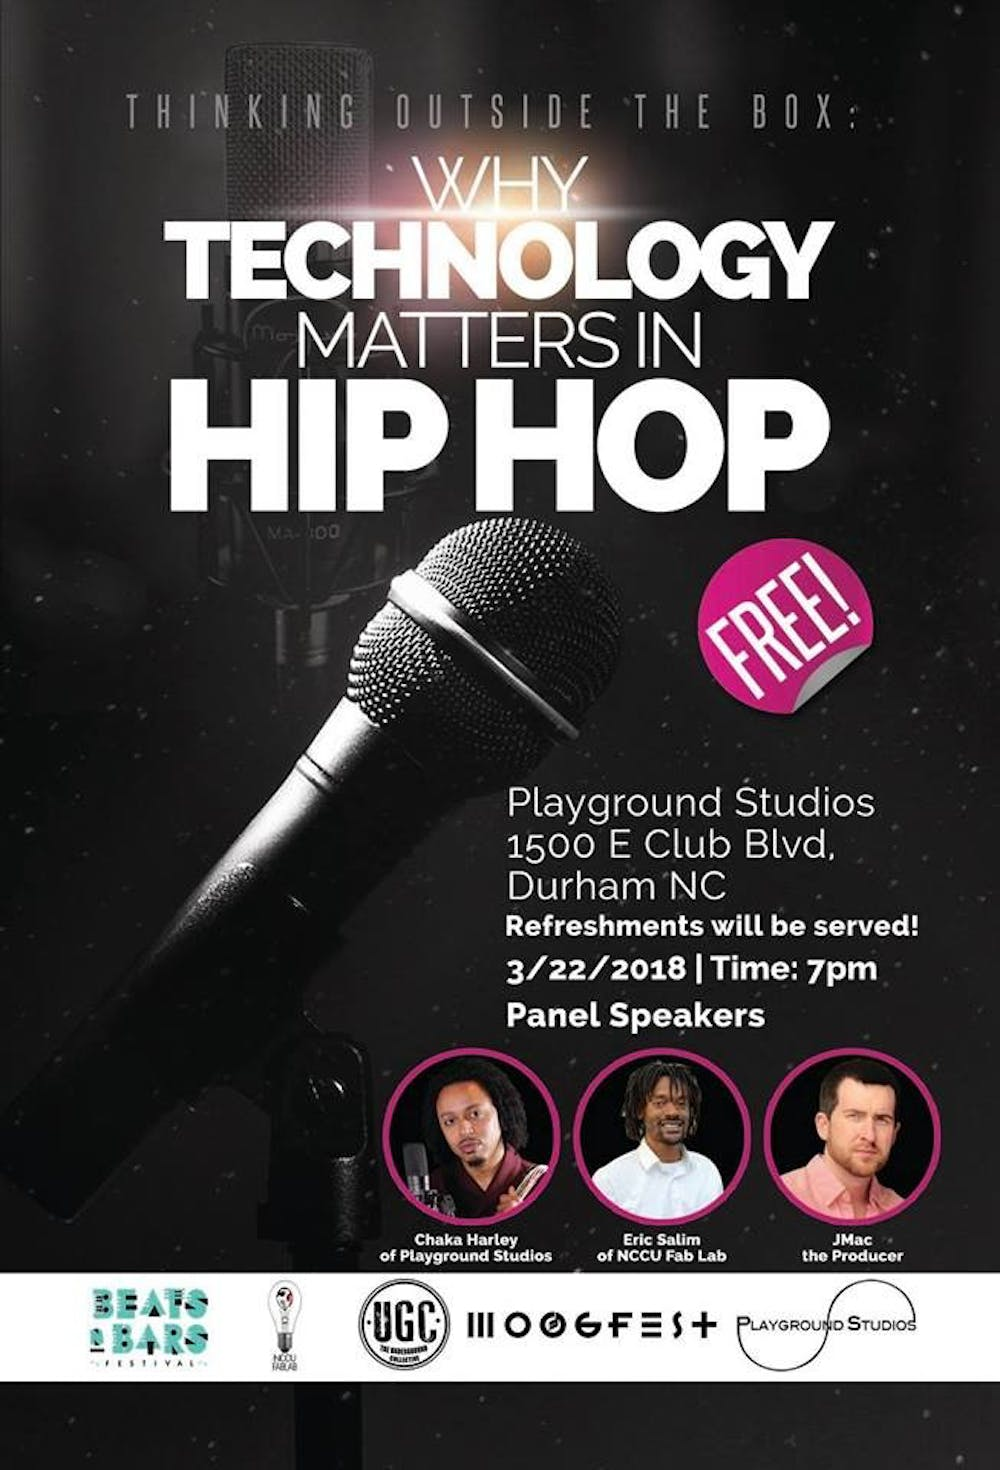 Drop the mic: Playground Studios says technology and hip hop collide in perfect harmony